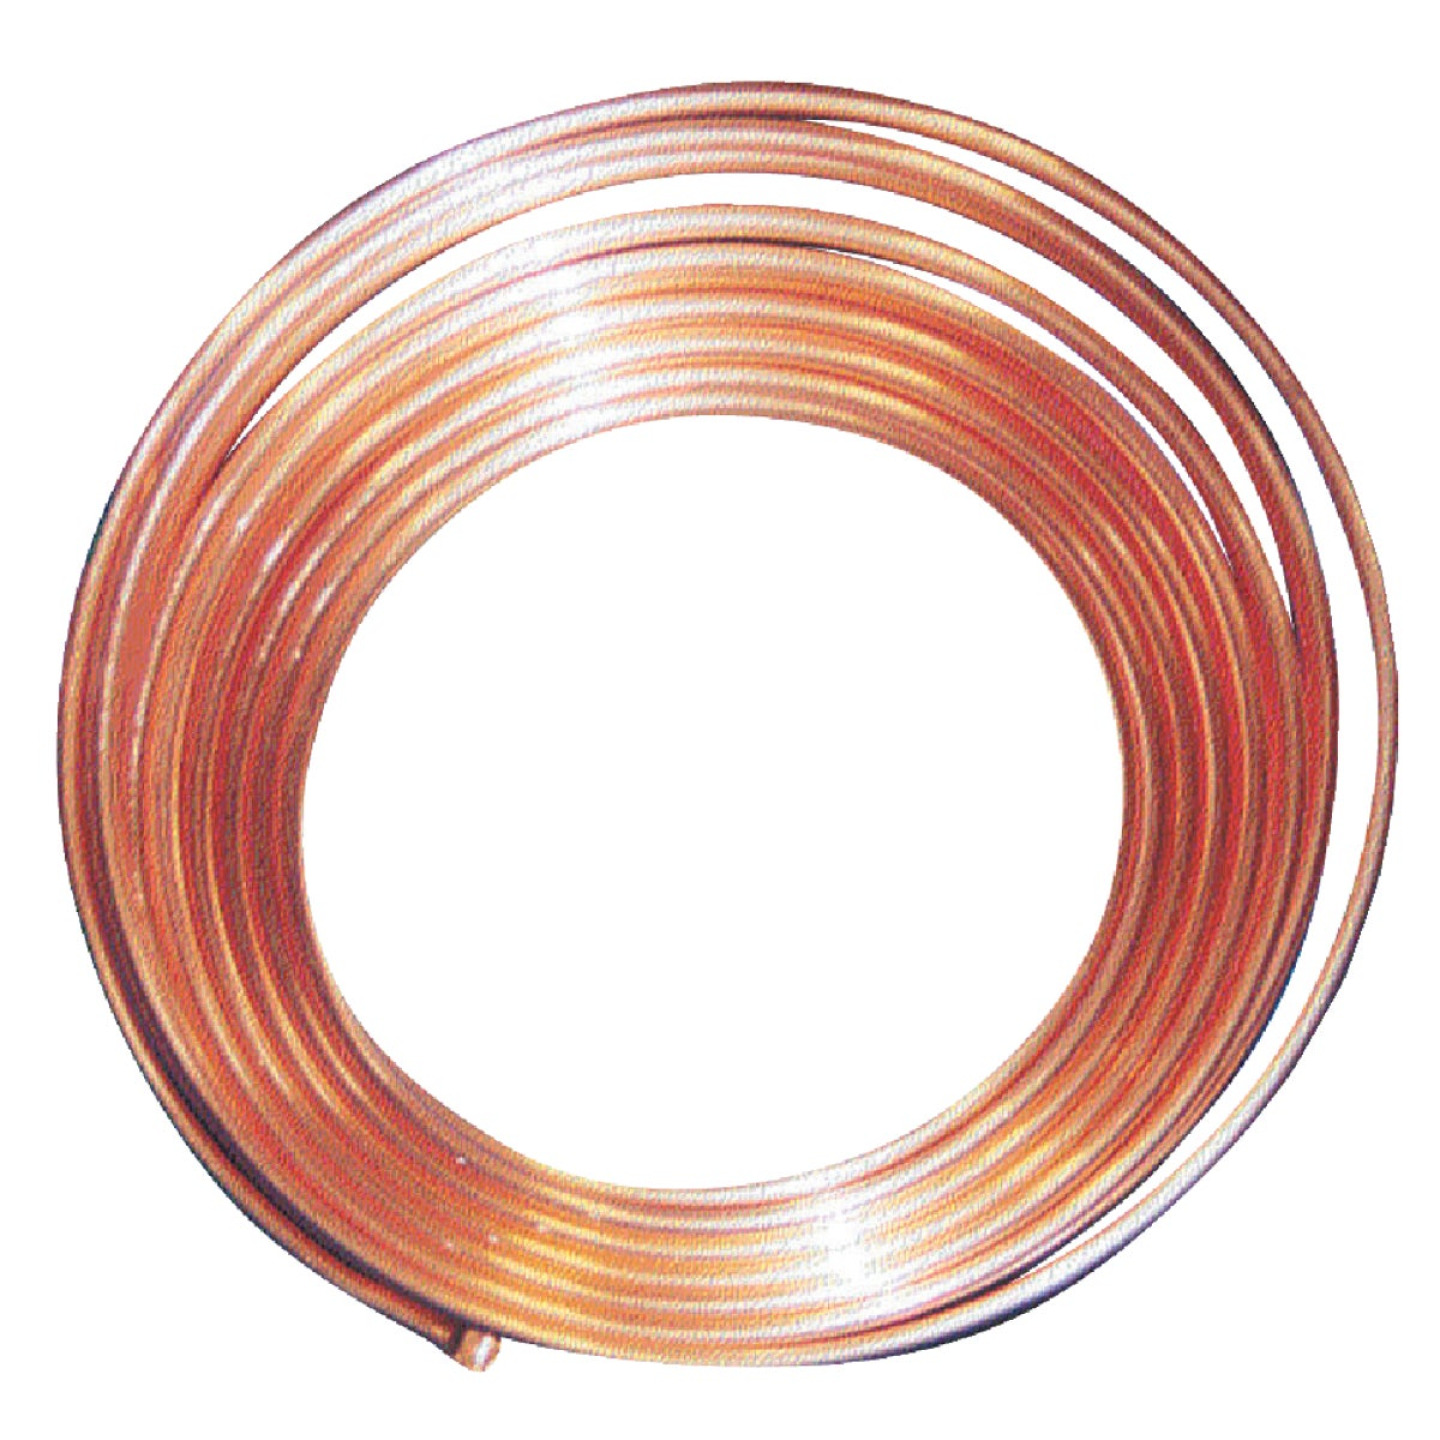 Mueller Streamline 3/8 In. ID x 10 Ft. Soft Coil Copper Tubing Image 1